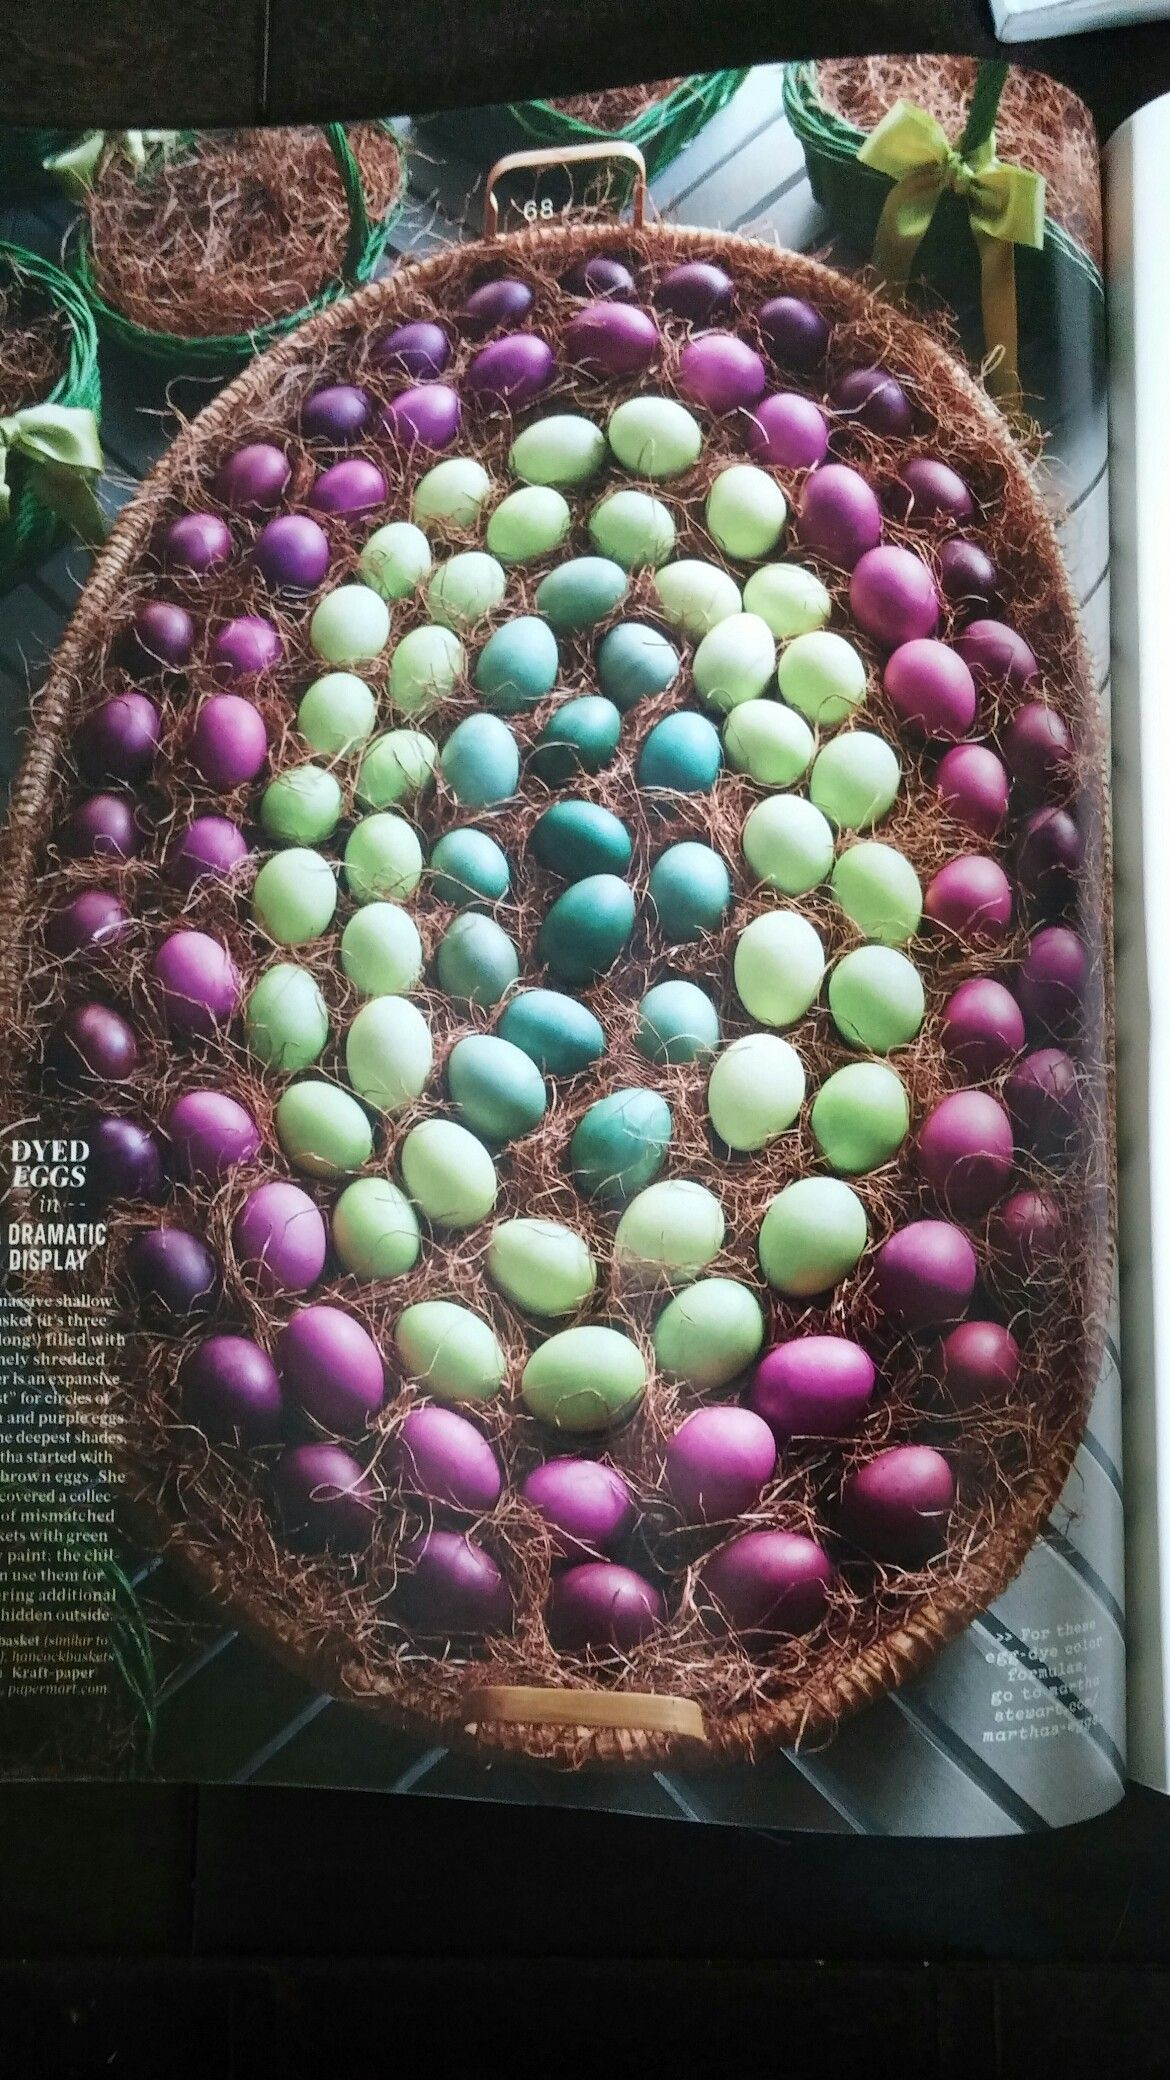 Dyed eggs from martha stewart living april 2015